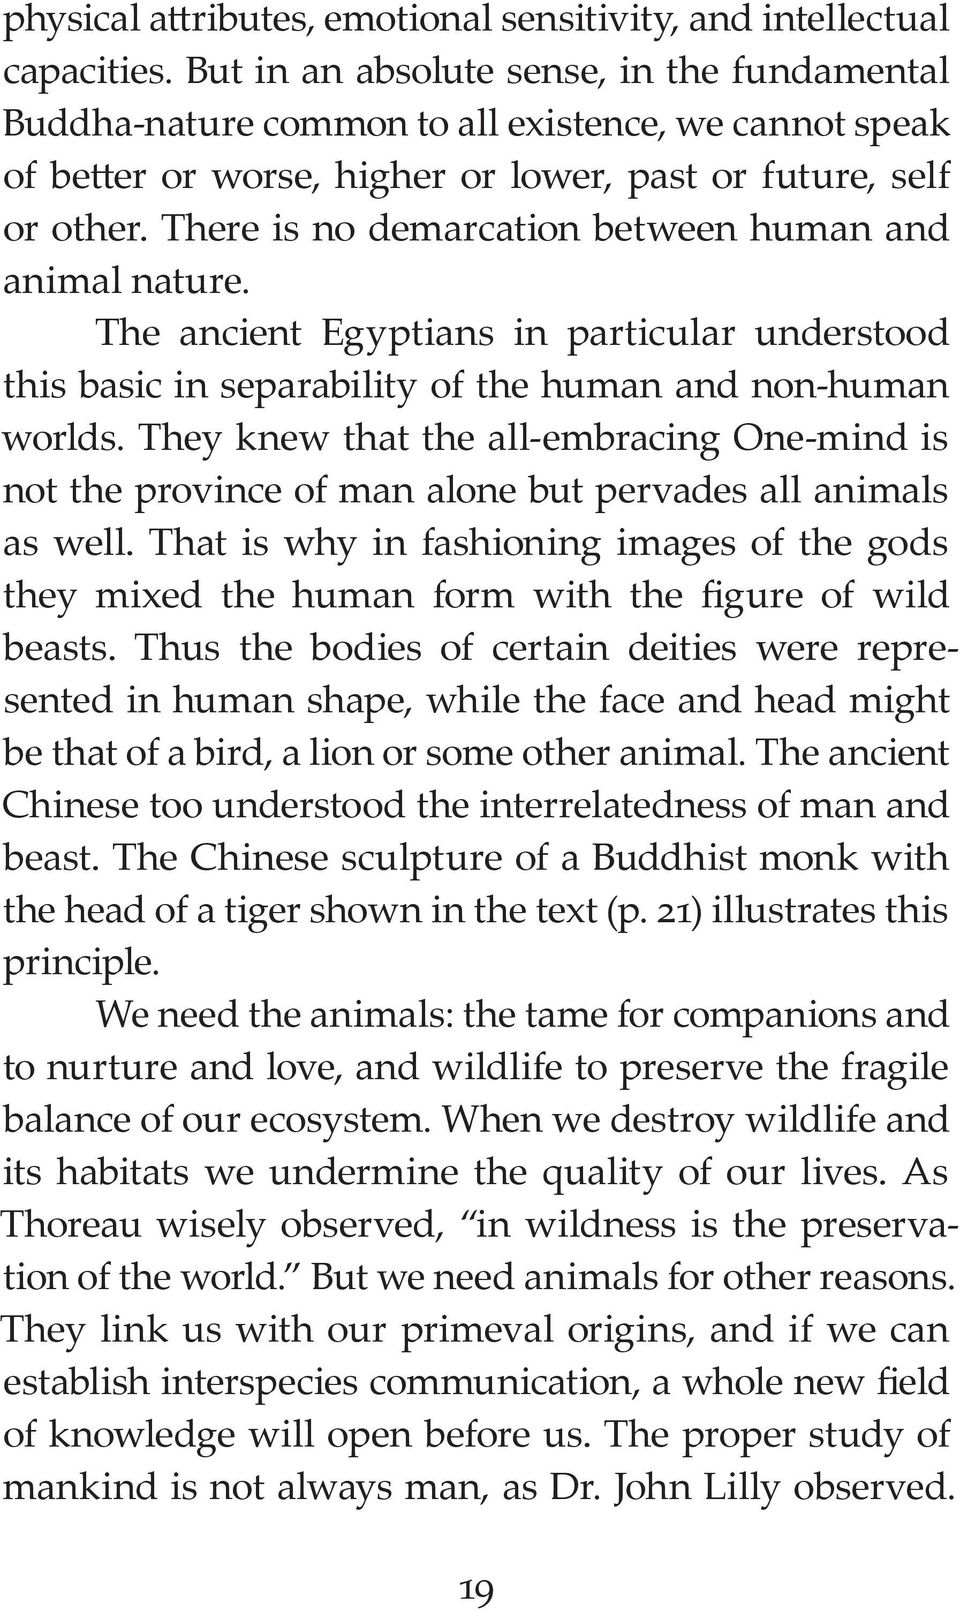 There is no demarcation between human and animal nature. The ancient Egyptians in particular understood this basic in separability of the human and non-human worlds.